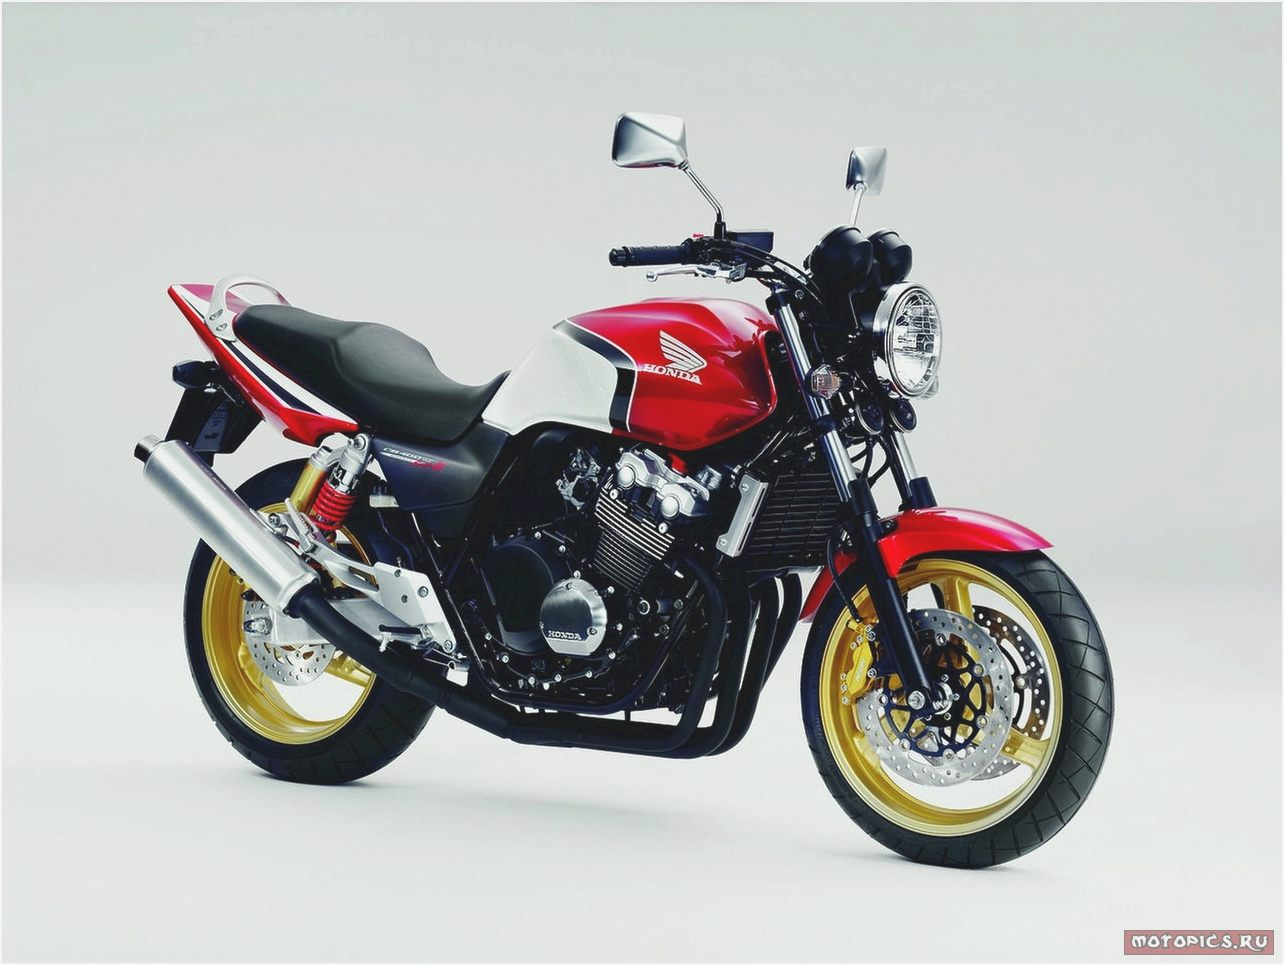 2010 honda cb 400 super four pics specs and information. Black Bedroom Furniture Sets. Home Design Ideas